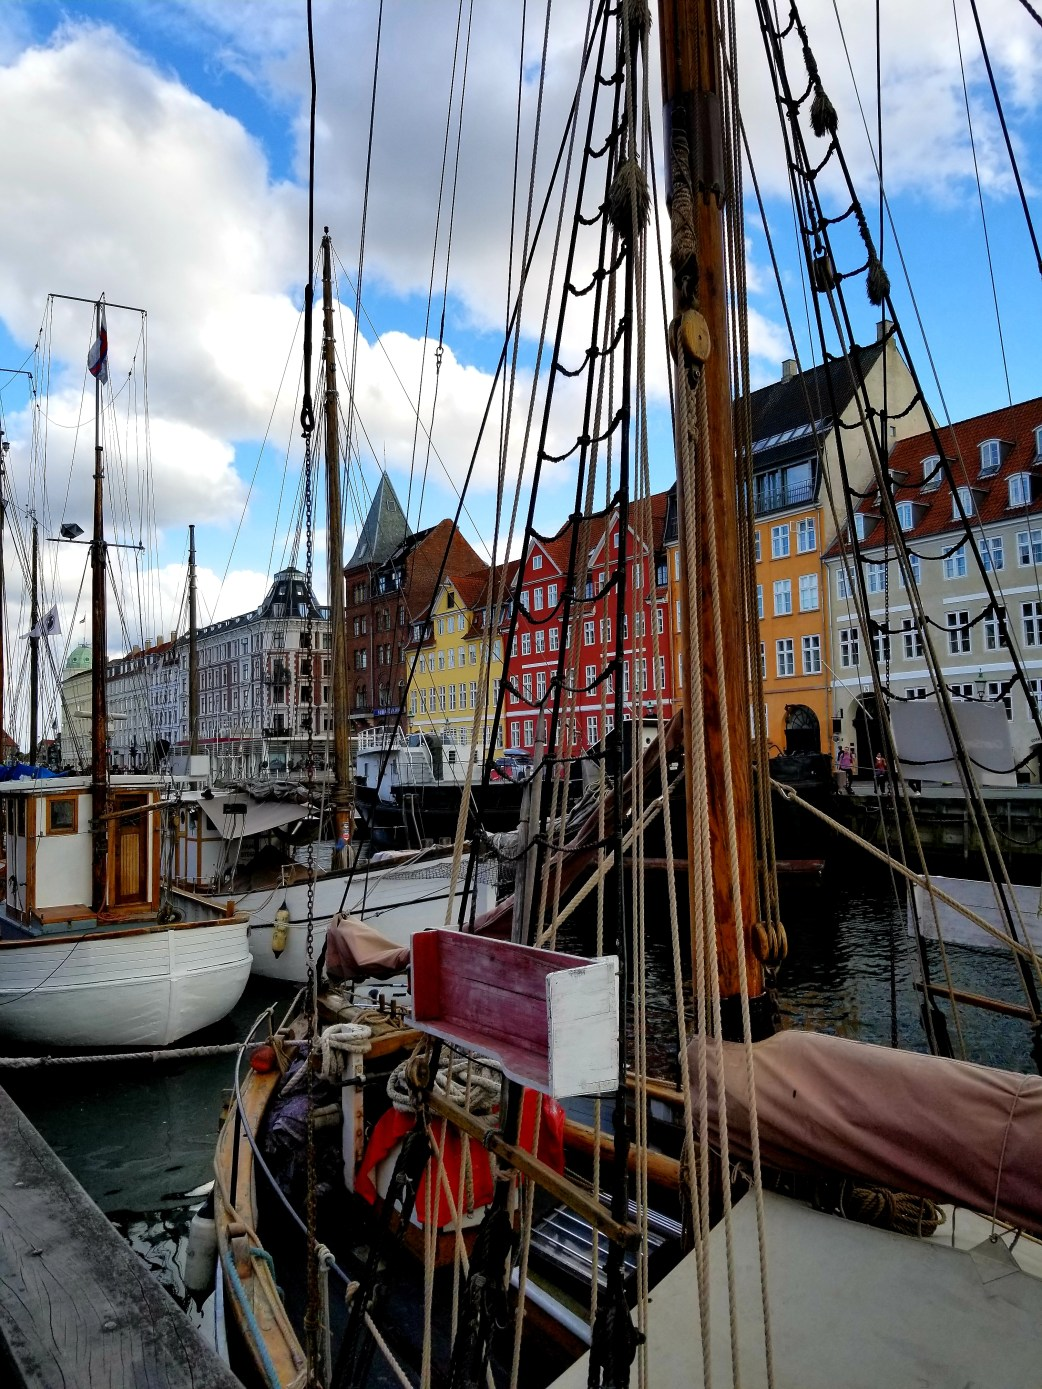 Picturesque photo of Nyhavn, Copenhagen